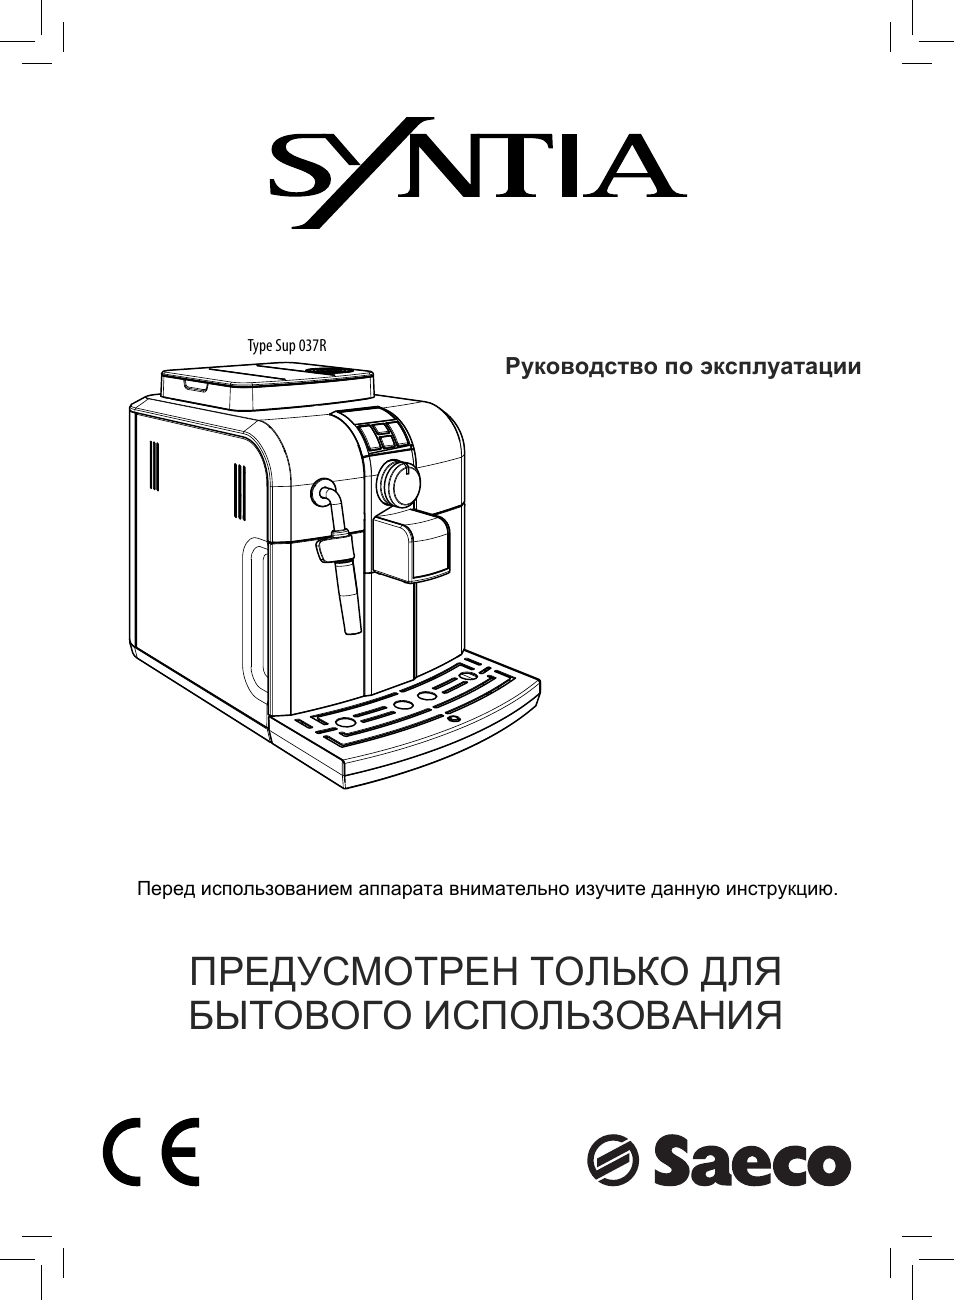 Saeco 8p User Guide Ebook Block Diagram Okifax50505300 Click To Preview Array Philips Syntia Sup037r Manual 23 Pages Rh Manualsdir